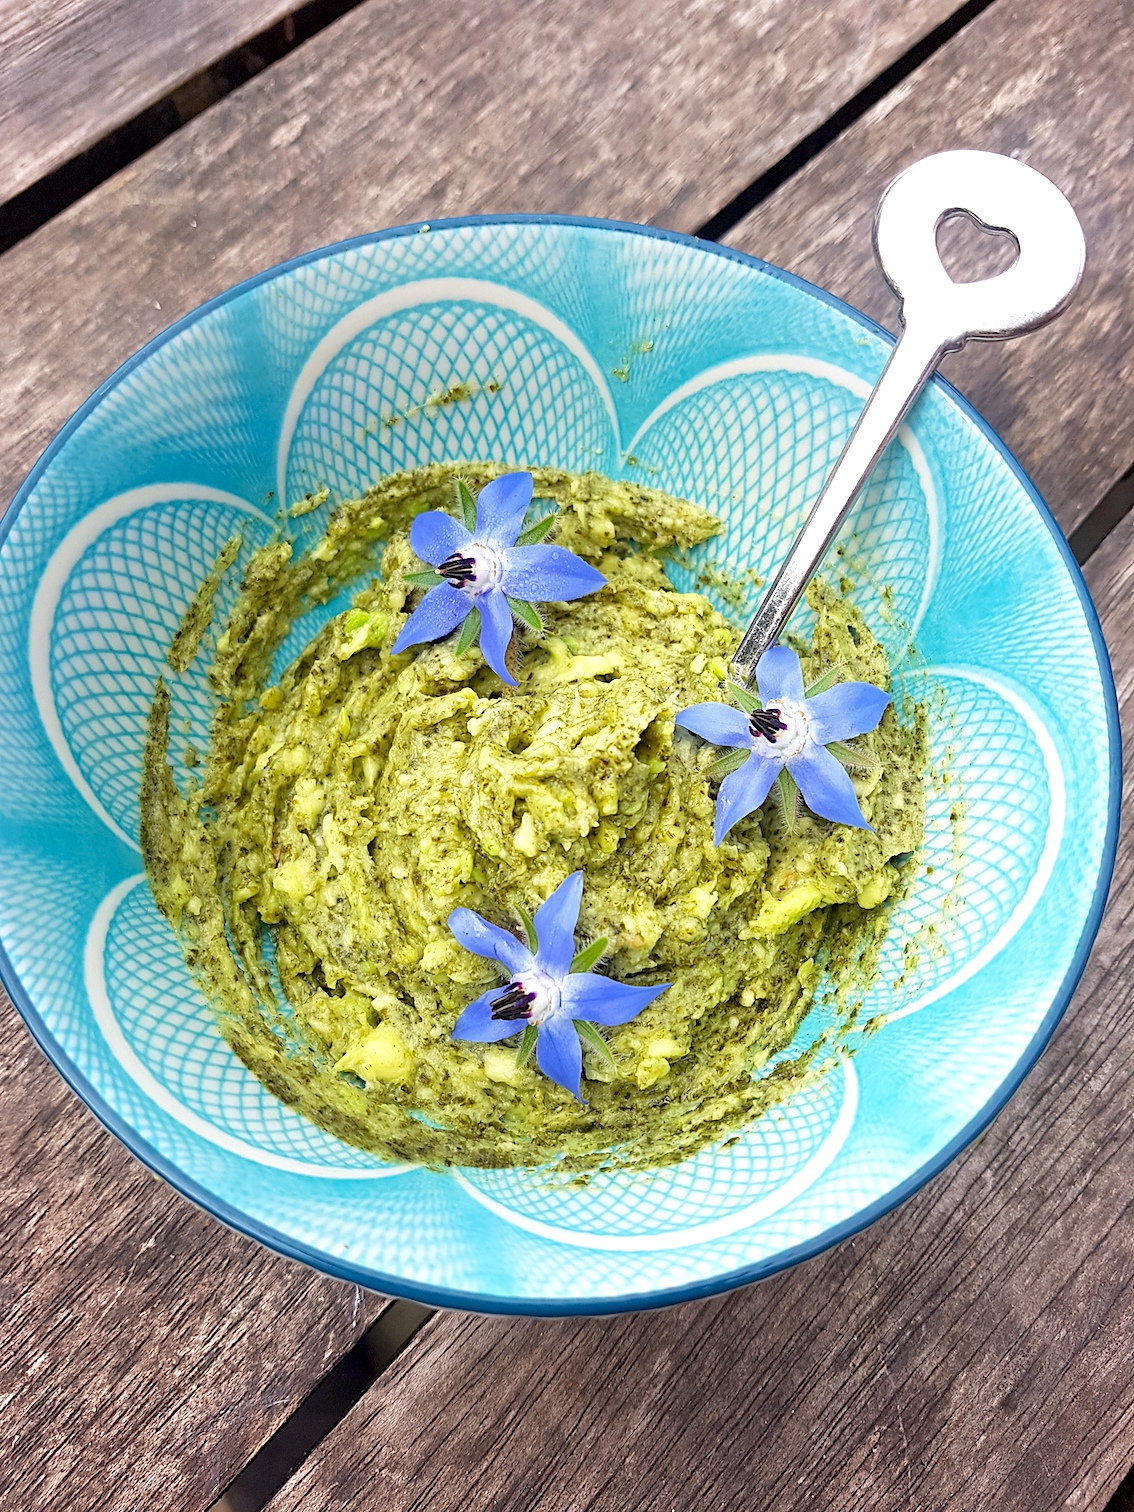 Avocado and kelp face mask in a pretty blue bowl with decorative edible flowers